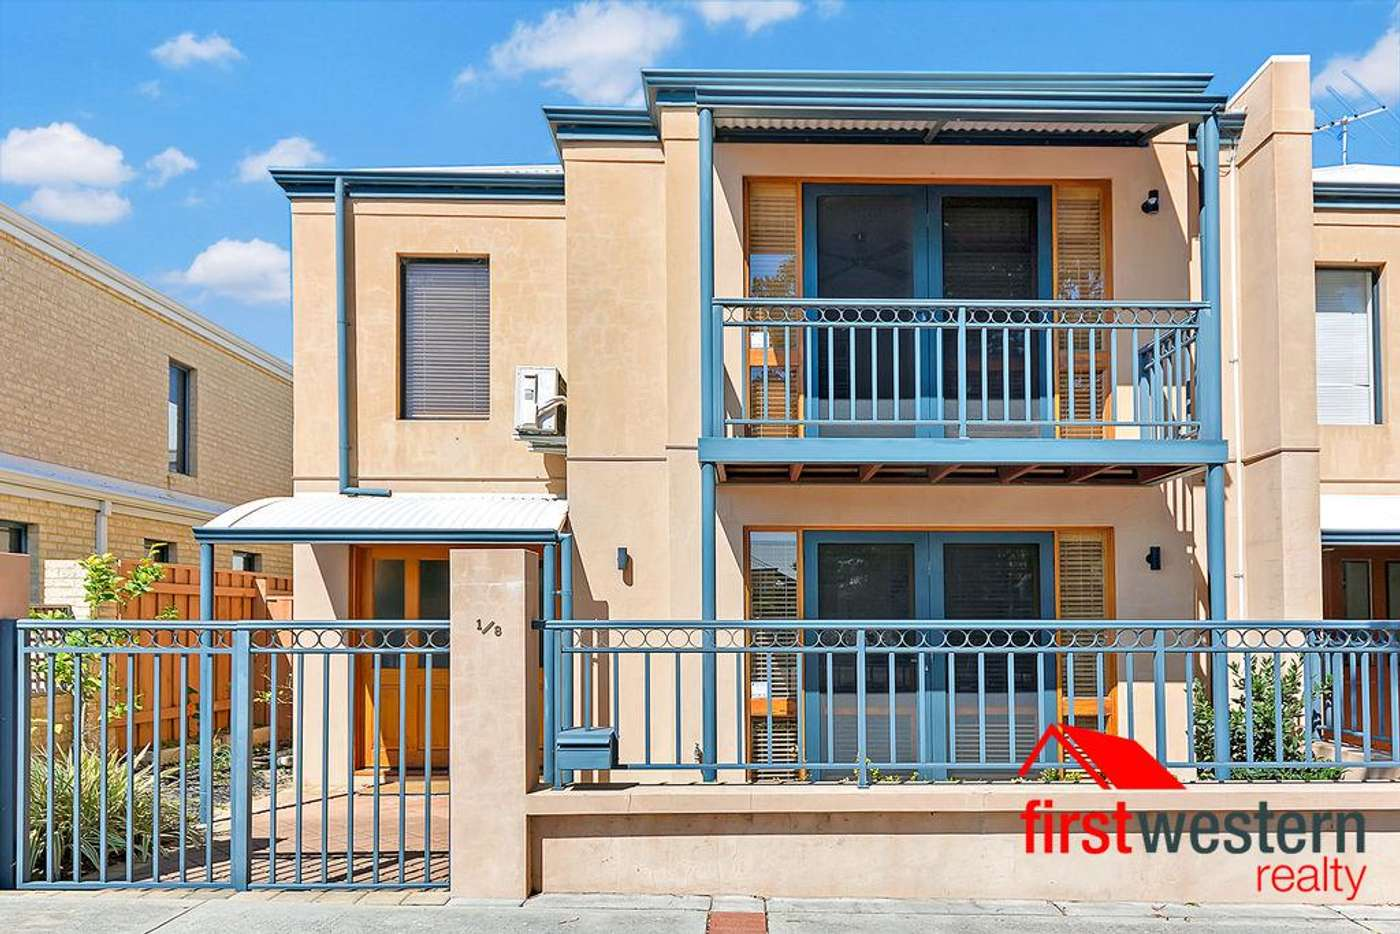 Main view of Homely townhouse listing, 1/8 Nottinghill Street, Joondalup WA 6027